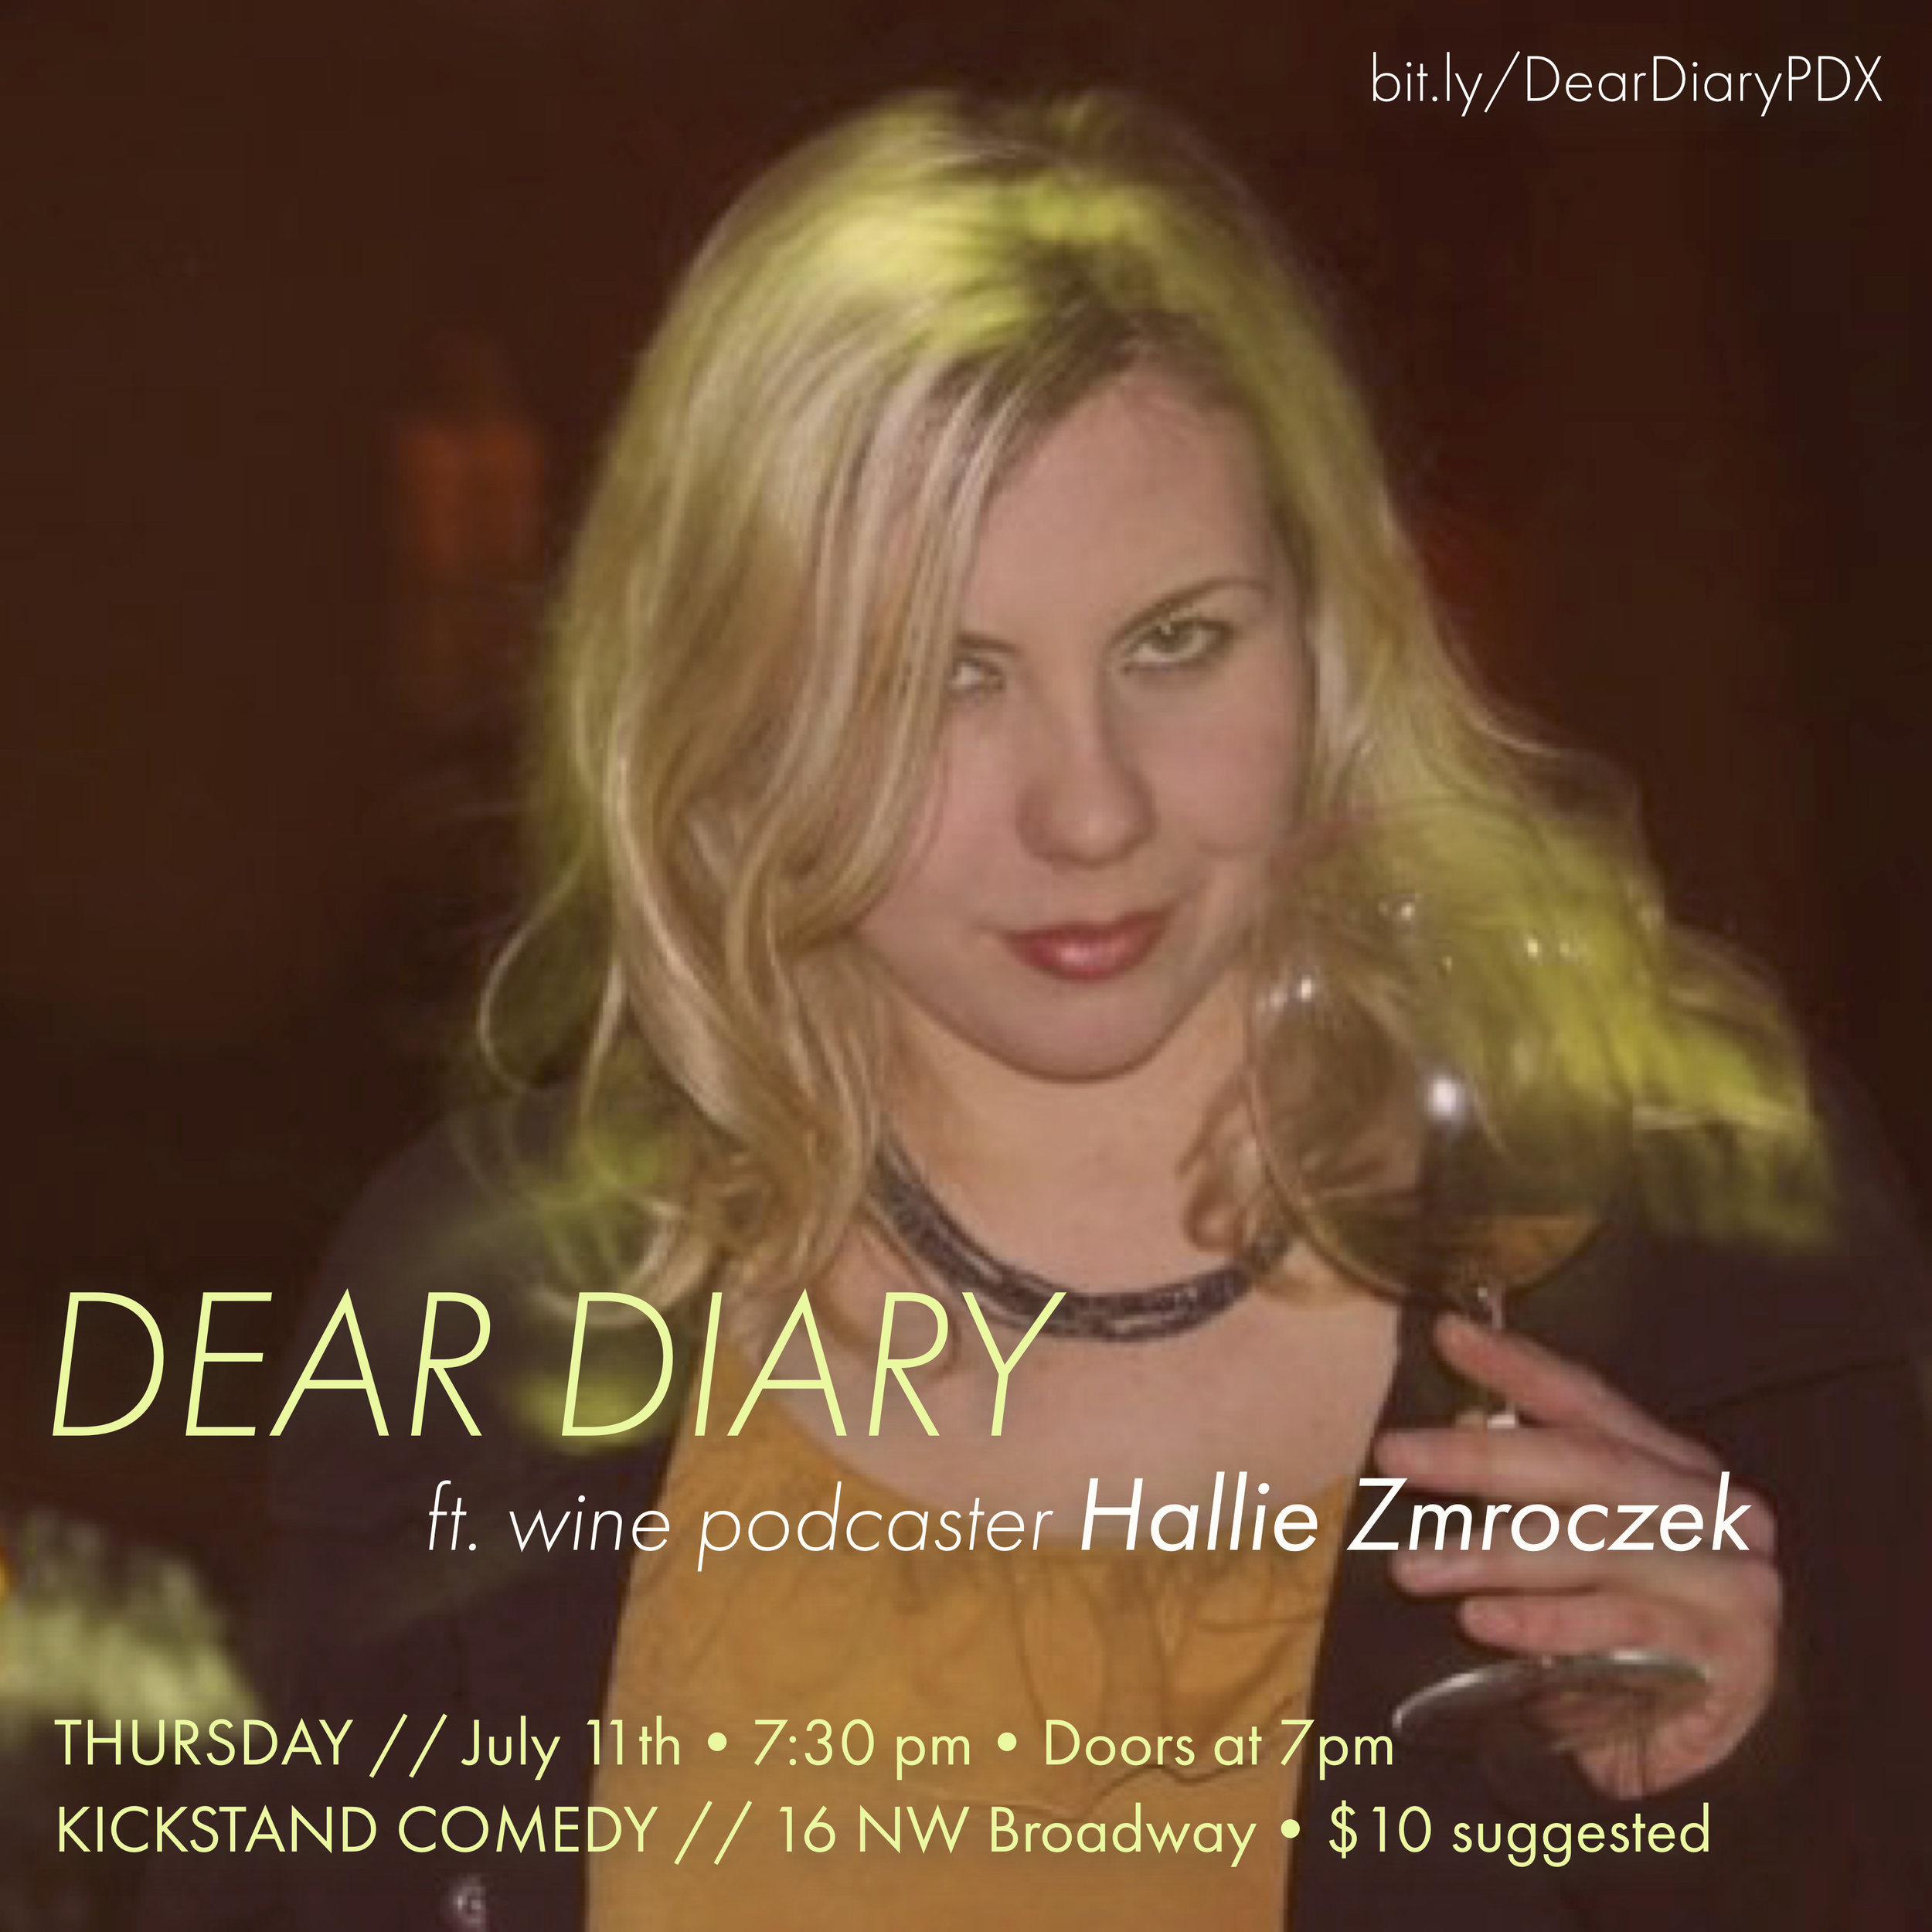 Dear Diary Digital Card_Hallie Zmroczek .jpg